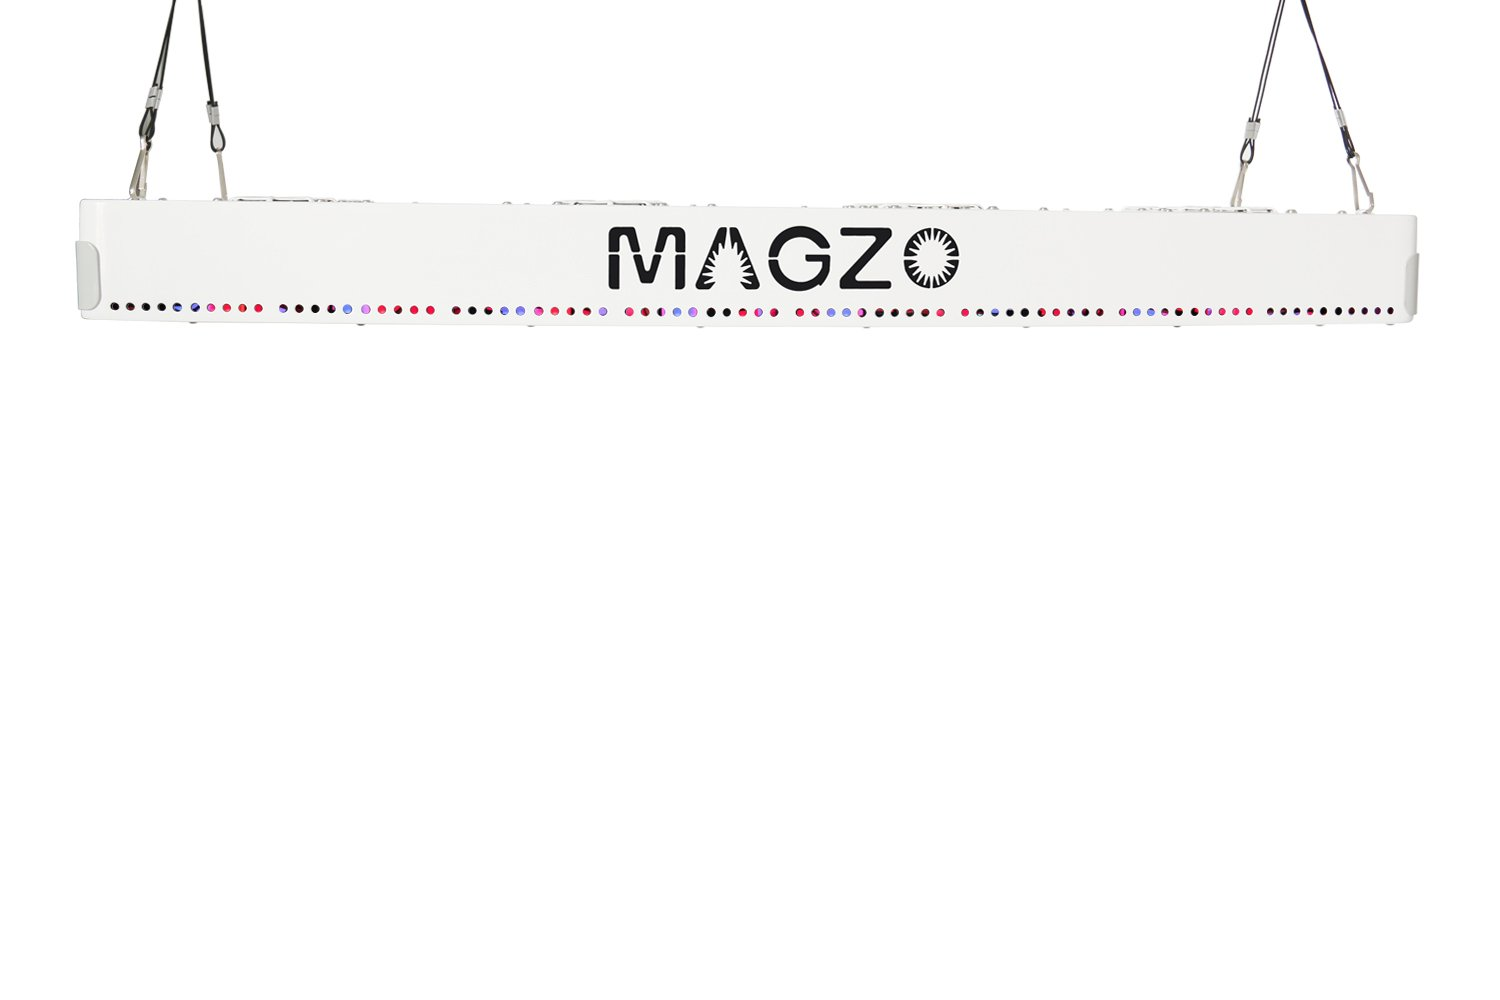 High Power Plant Grow Light, MAGZO A16 Full Spectrum LED Grow Lights with 3W Chips for Greenhouse Plants Marijuana Bonsai (MAGZO A16 550W) by MAGZO (Image #6)